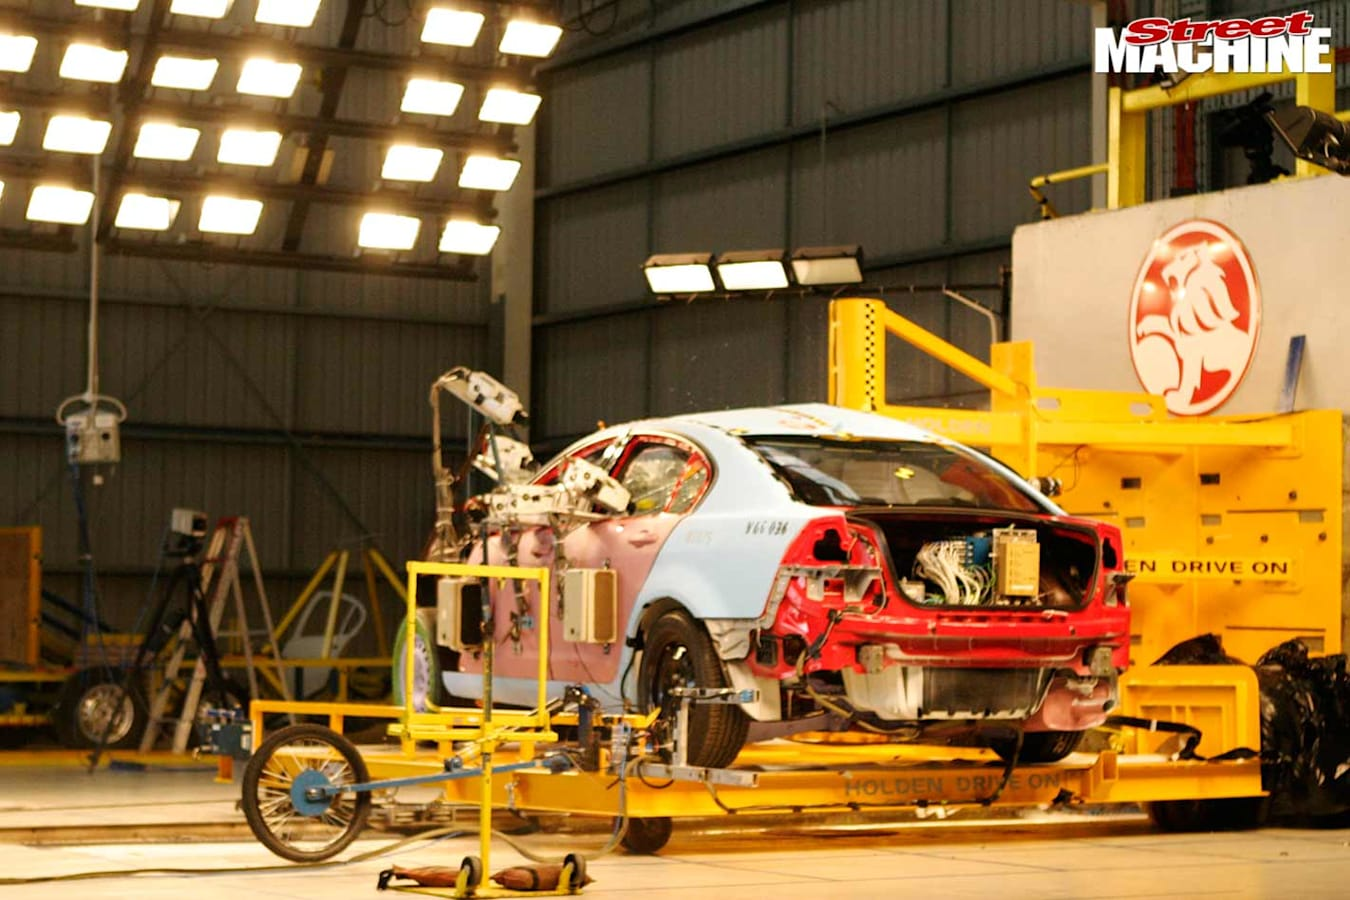 Holden Commodore VE production